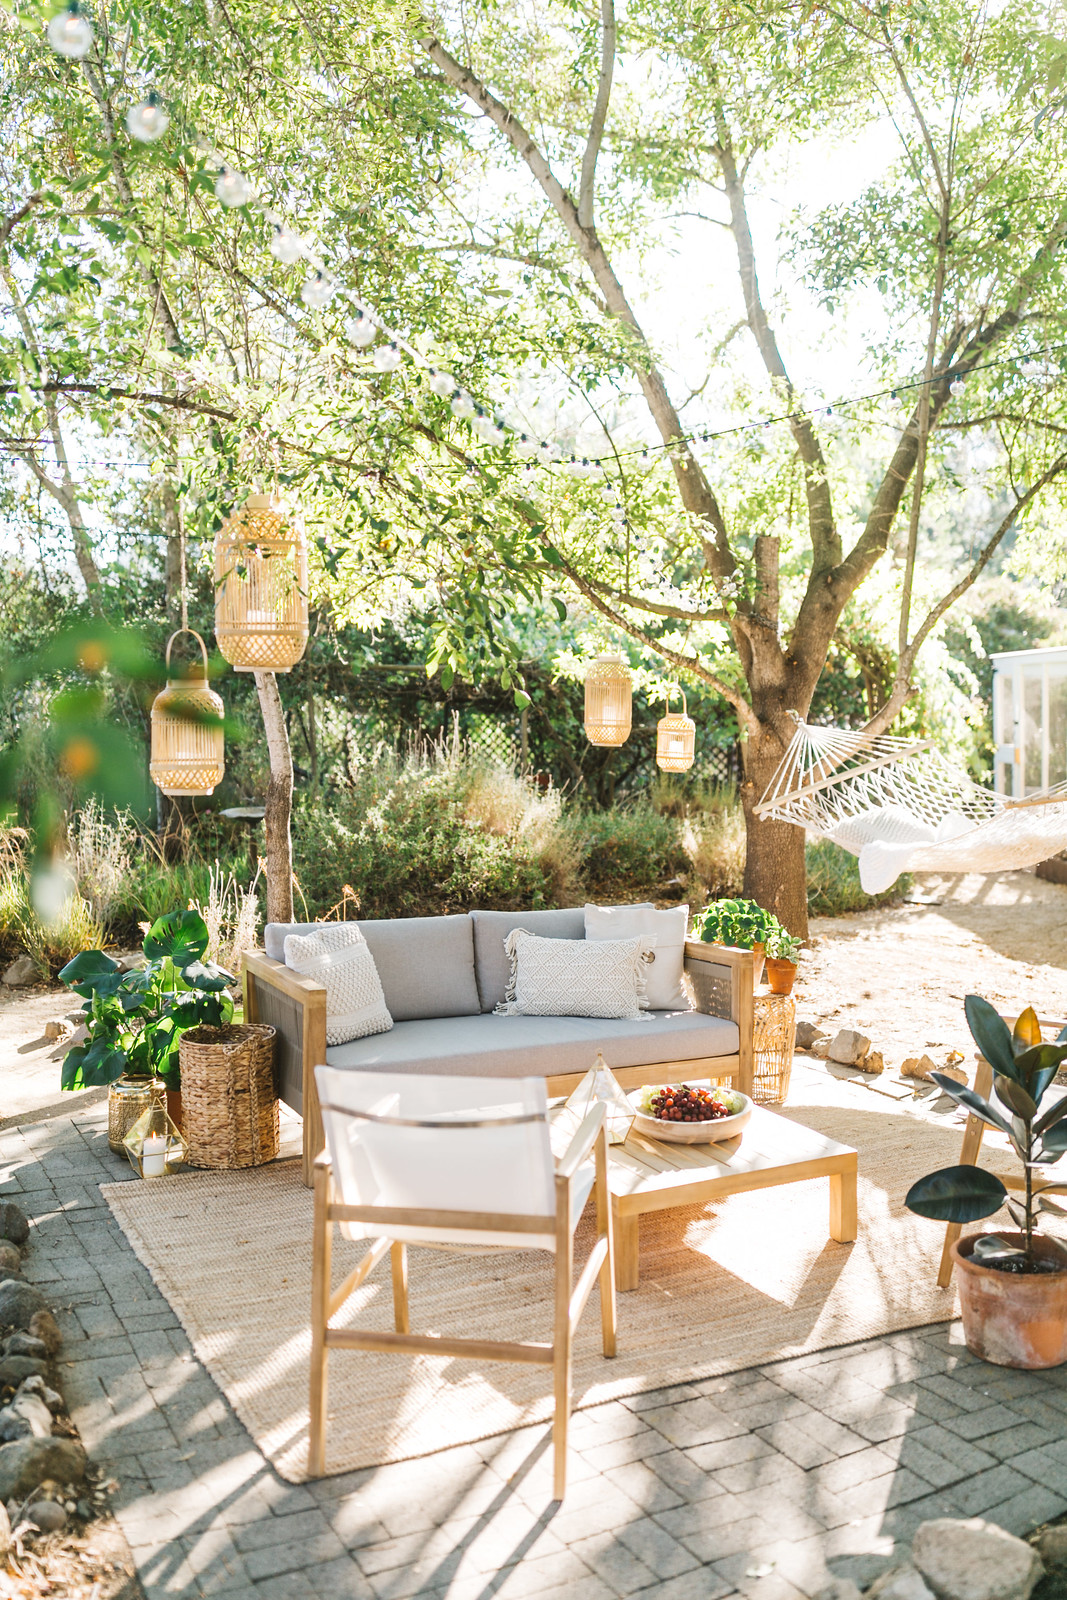 creating a cozy outdoor oasis at